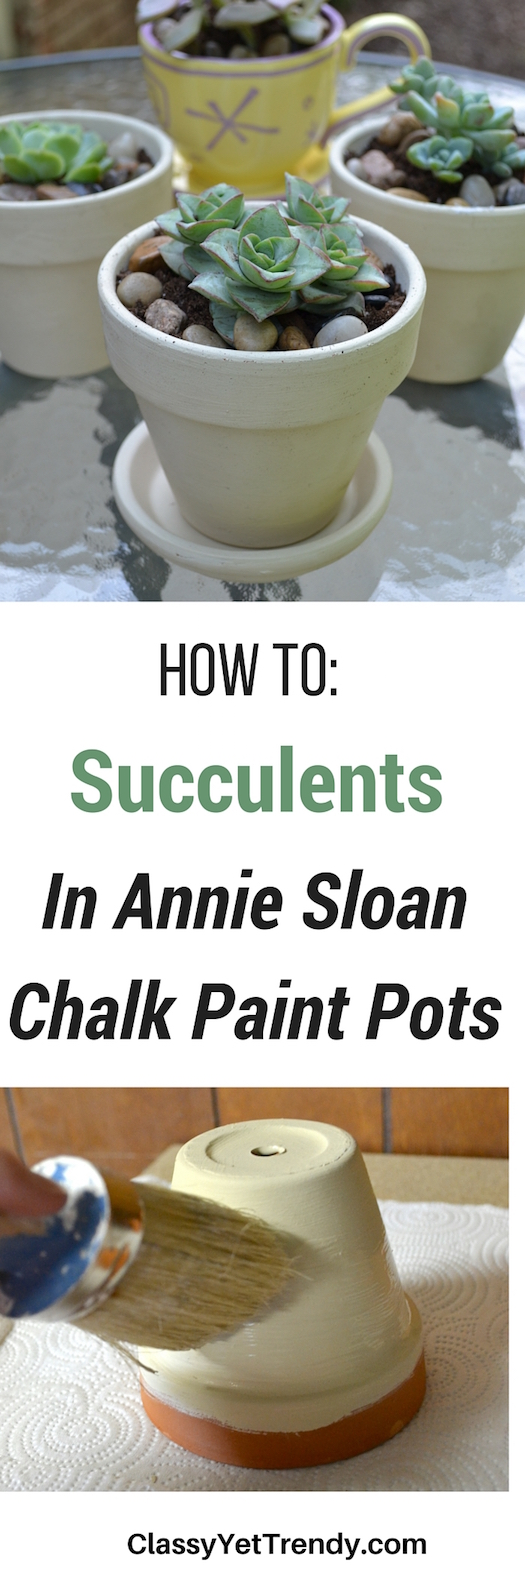 how to succulents in chalk paint pots classy yet trendy. Black Bedroom Furniture Sets. Home Design Ideas